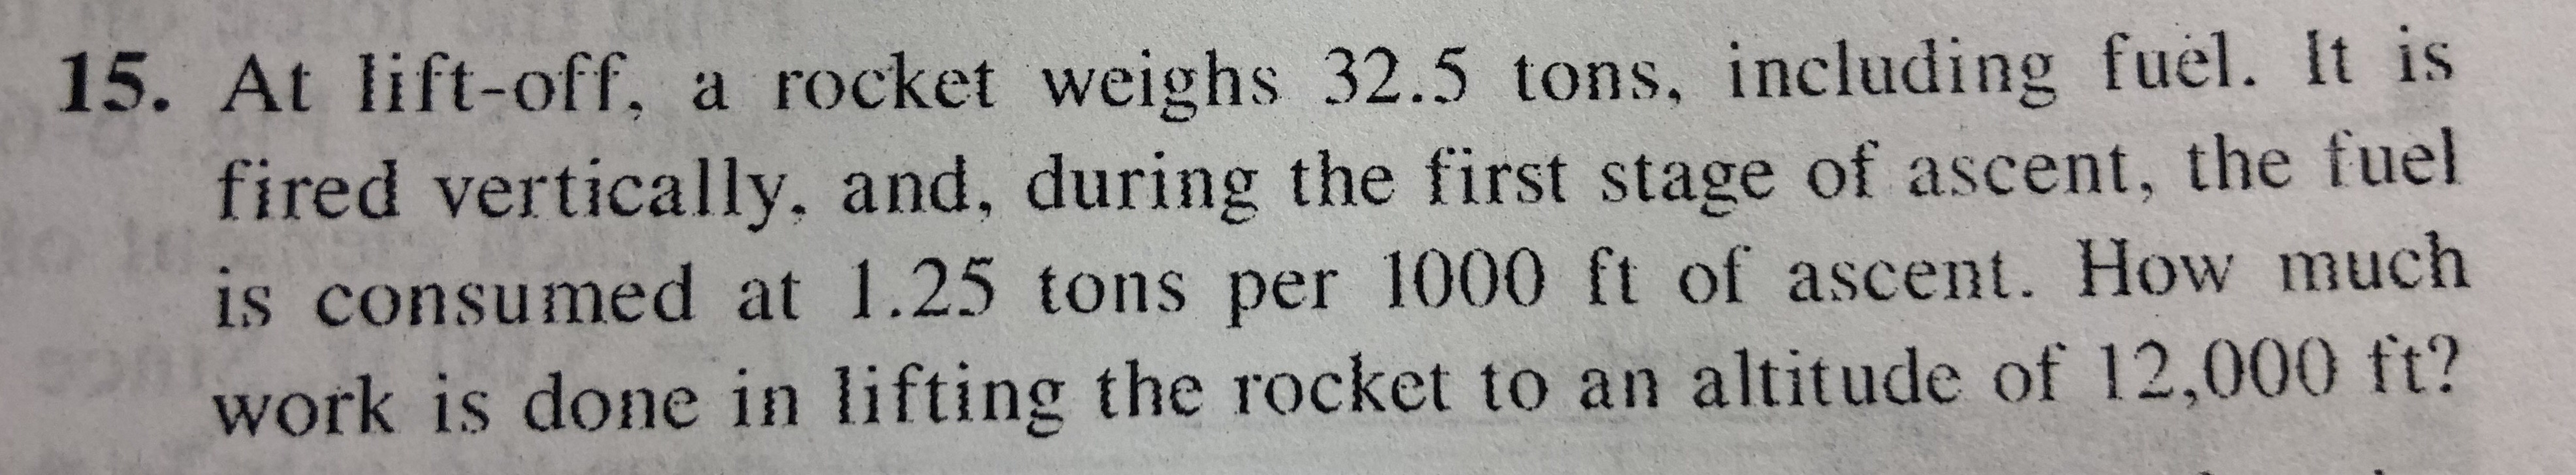 15. At lift-off, a rocket weighs 32.5 tons, including fuel. It is fired vertically, and, during the first stage of ascent, the fuel is consumed at 1.25 tons per 1000 ft of ascent. How much work is done in lifting the rocket to an altitude of 12,000 ft?